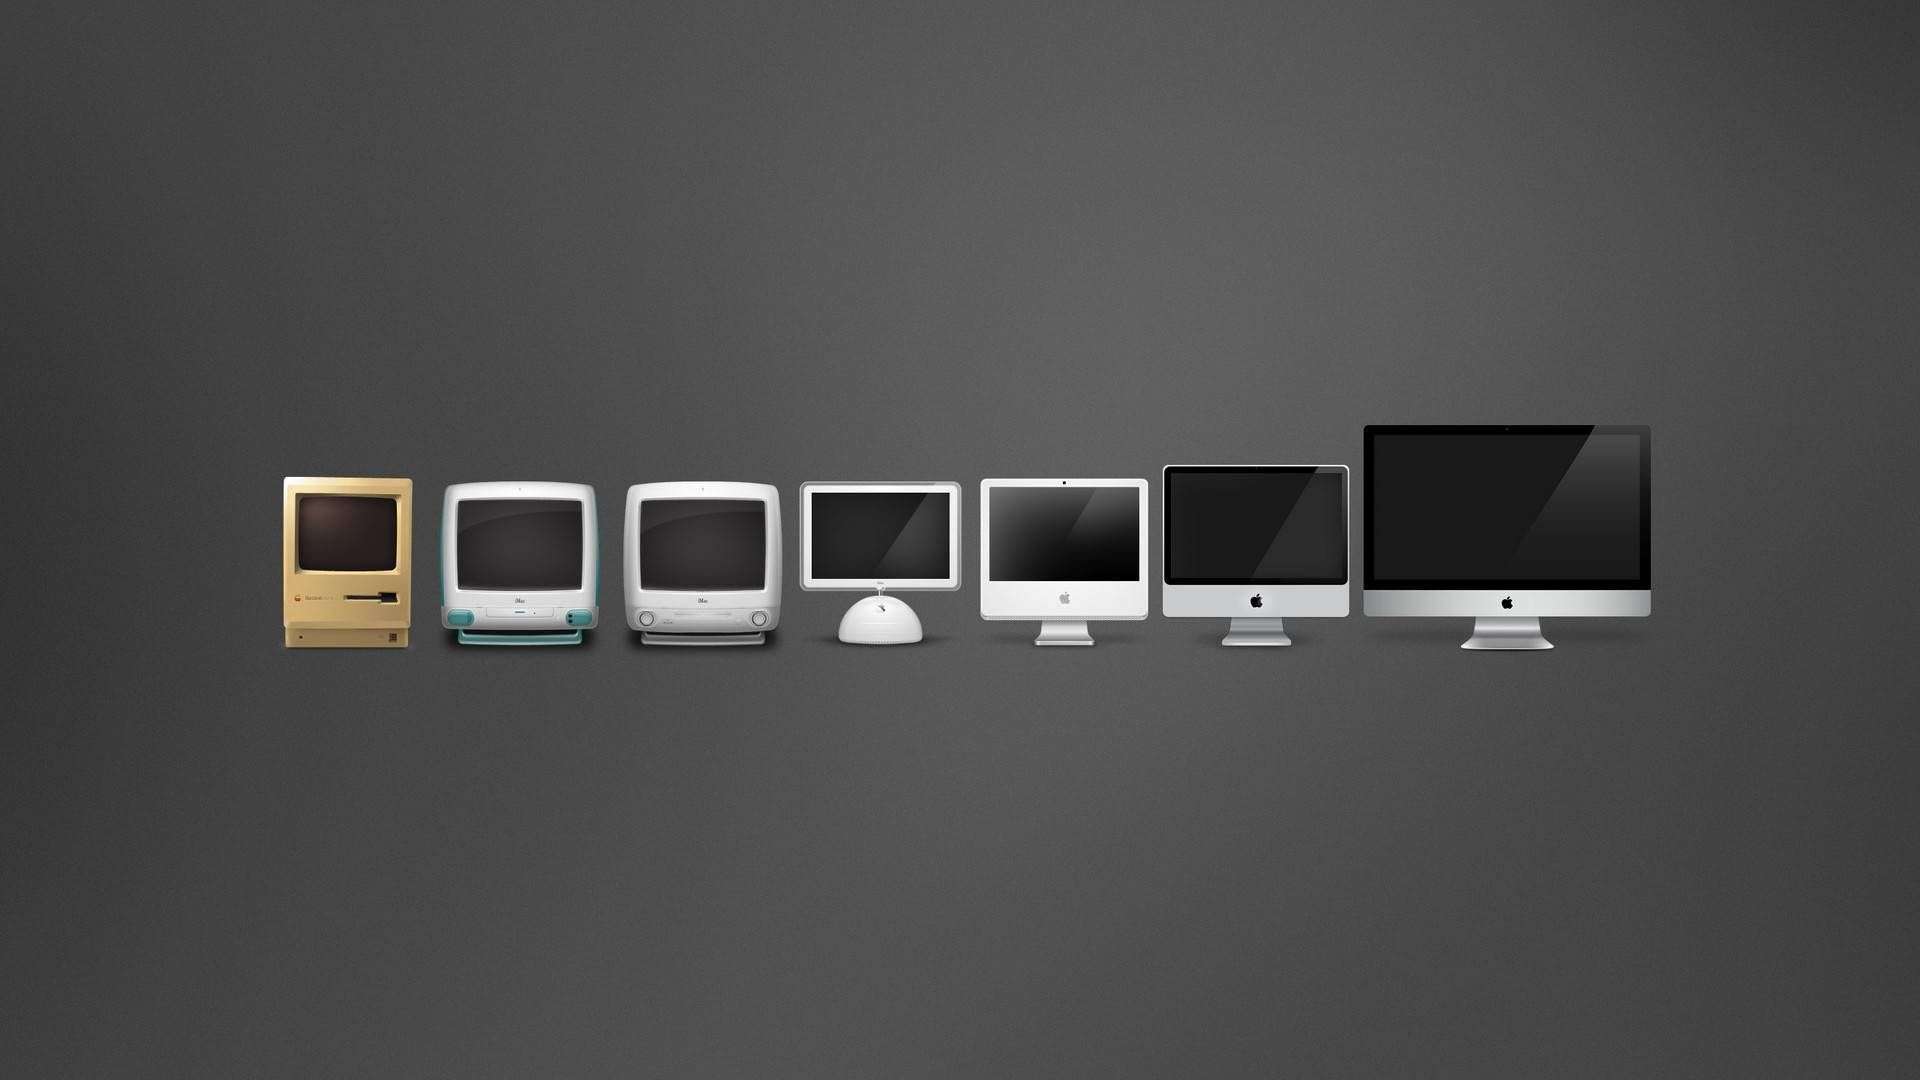 Download Wallpaper Macintosh Mac Apple Evolution Free Desktop